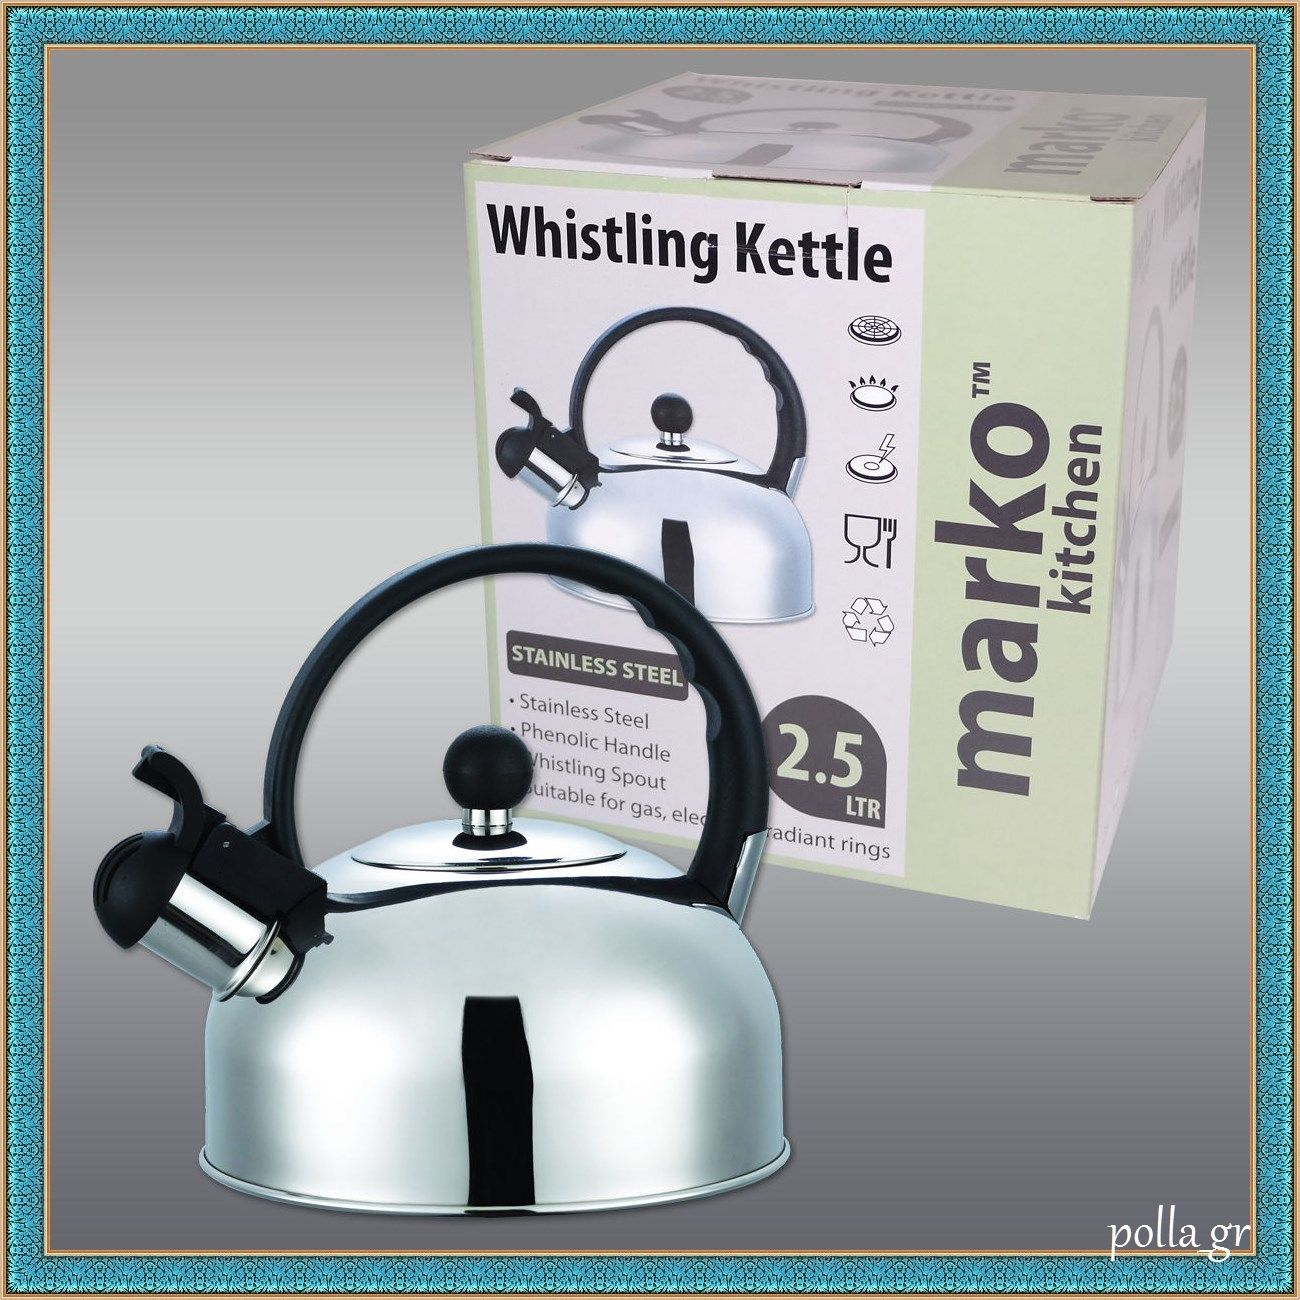 Uncategorized Ebay Kitchen Appliances whistling kettle stainless steel kitchen appliances caravan camping 2 5 ltr new ebay